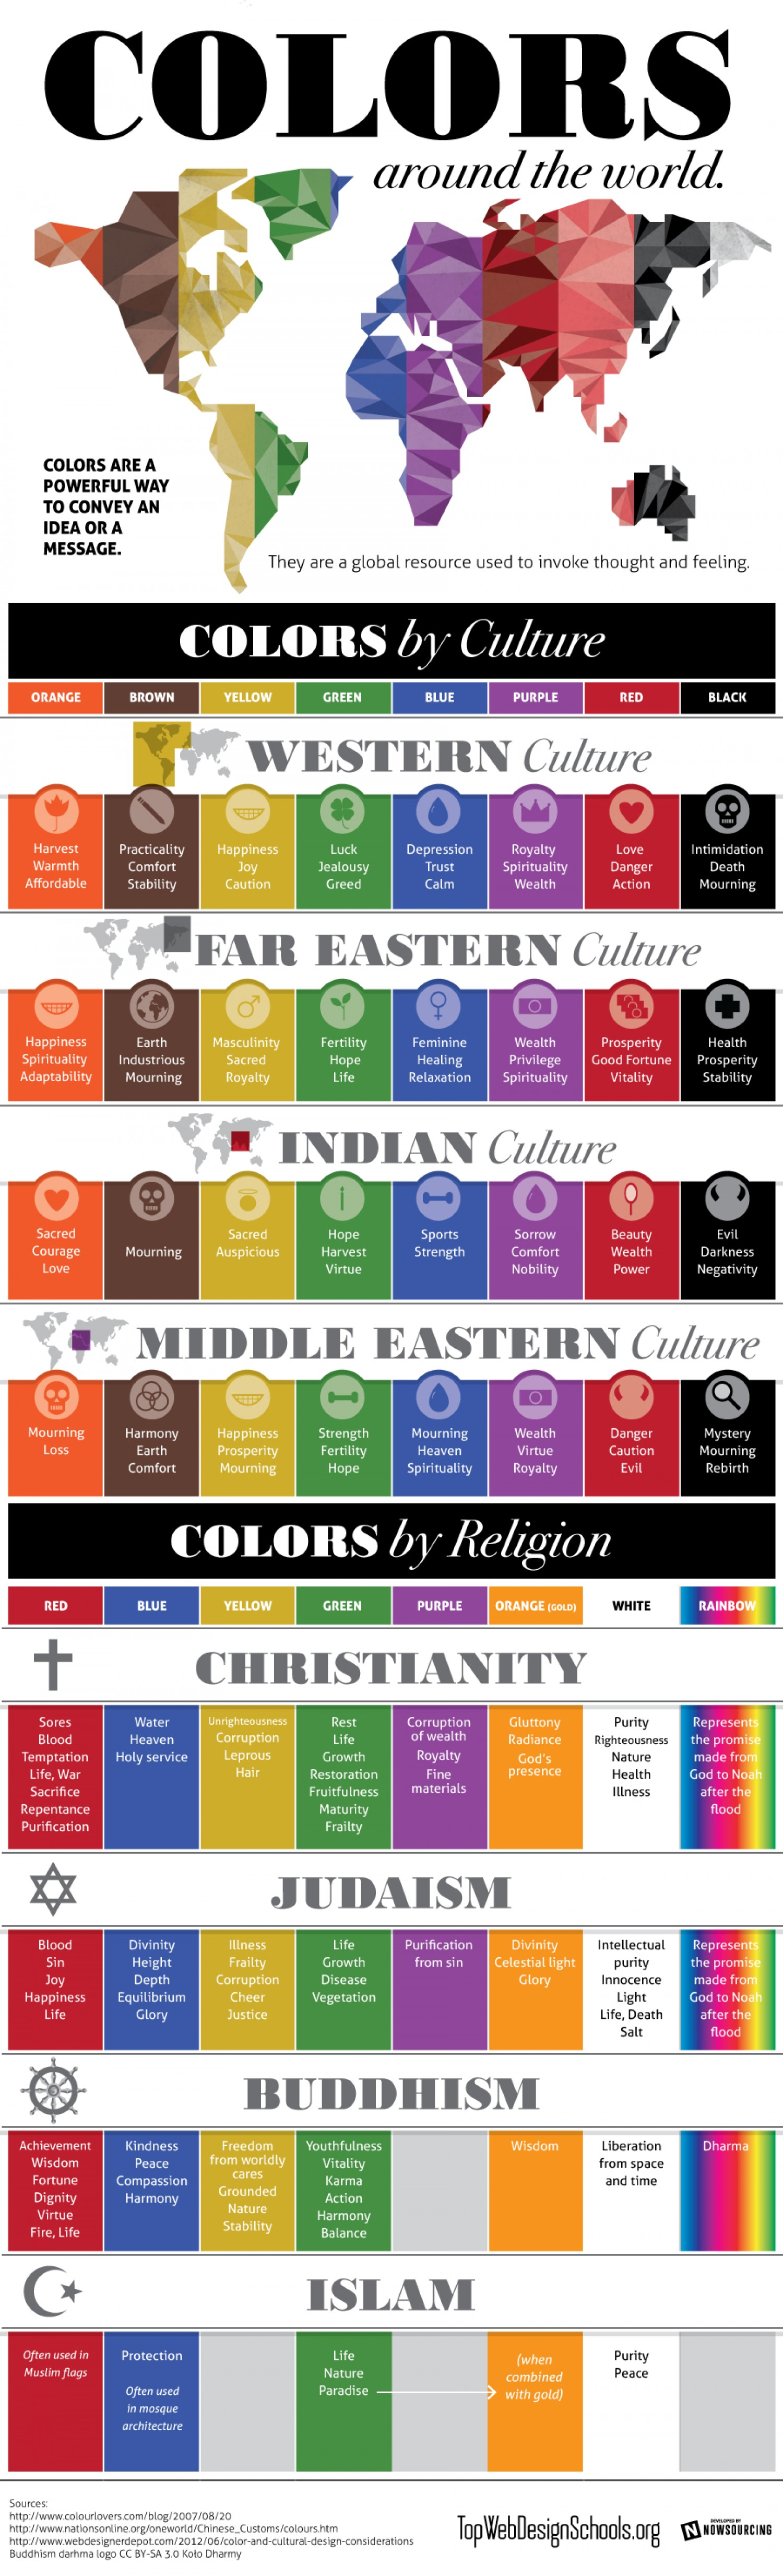 A great infographic about the meaning of colors in different cultures and religions around the world